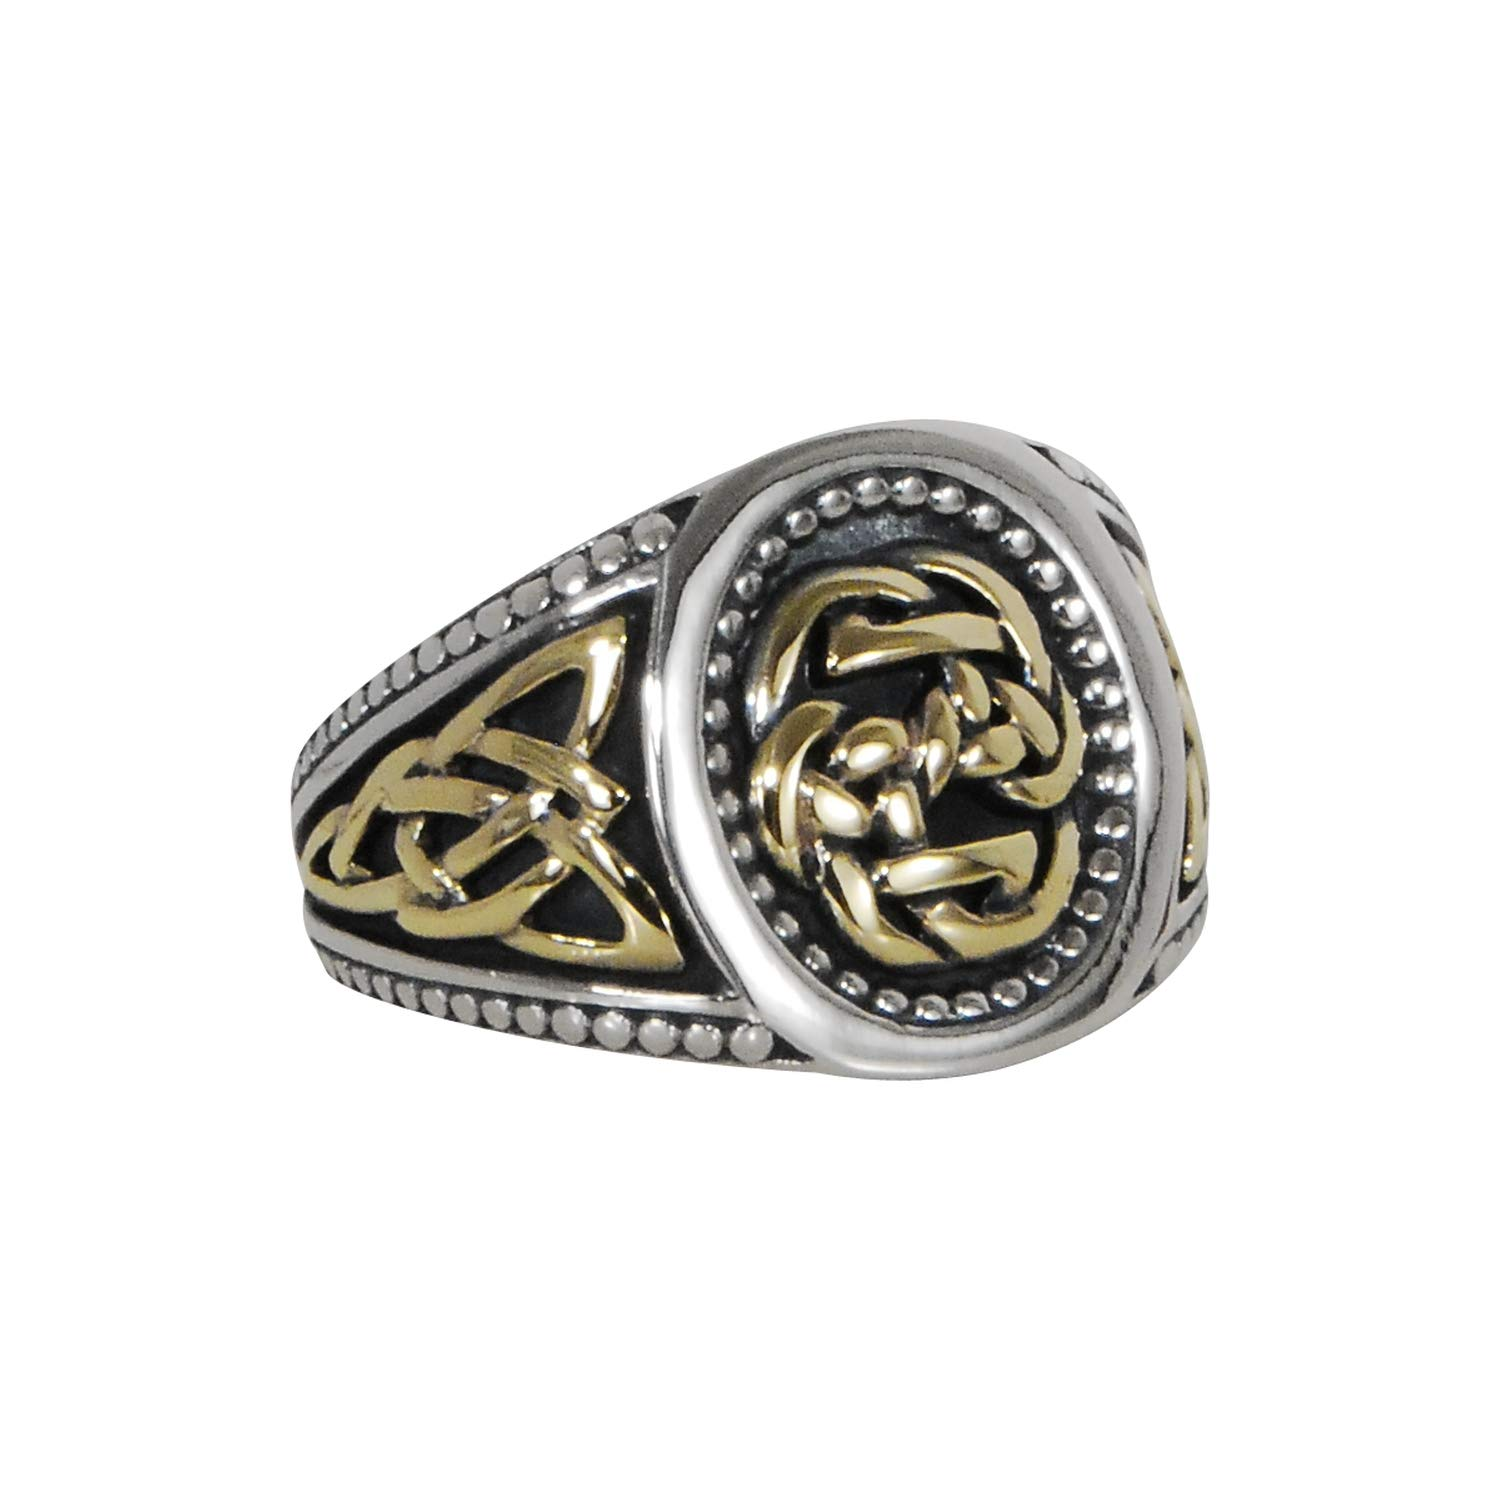 Path Of Life Ring Celtic Knot Mens Ring In Silver And Gold By Keith Jack